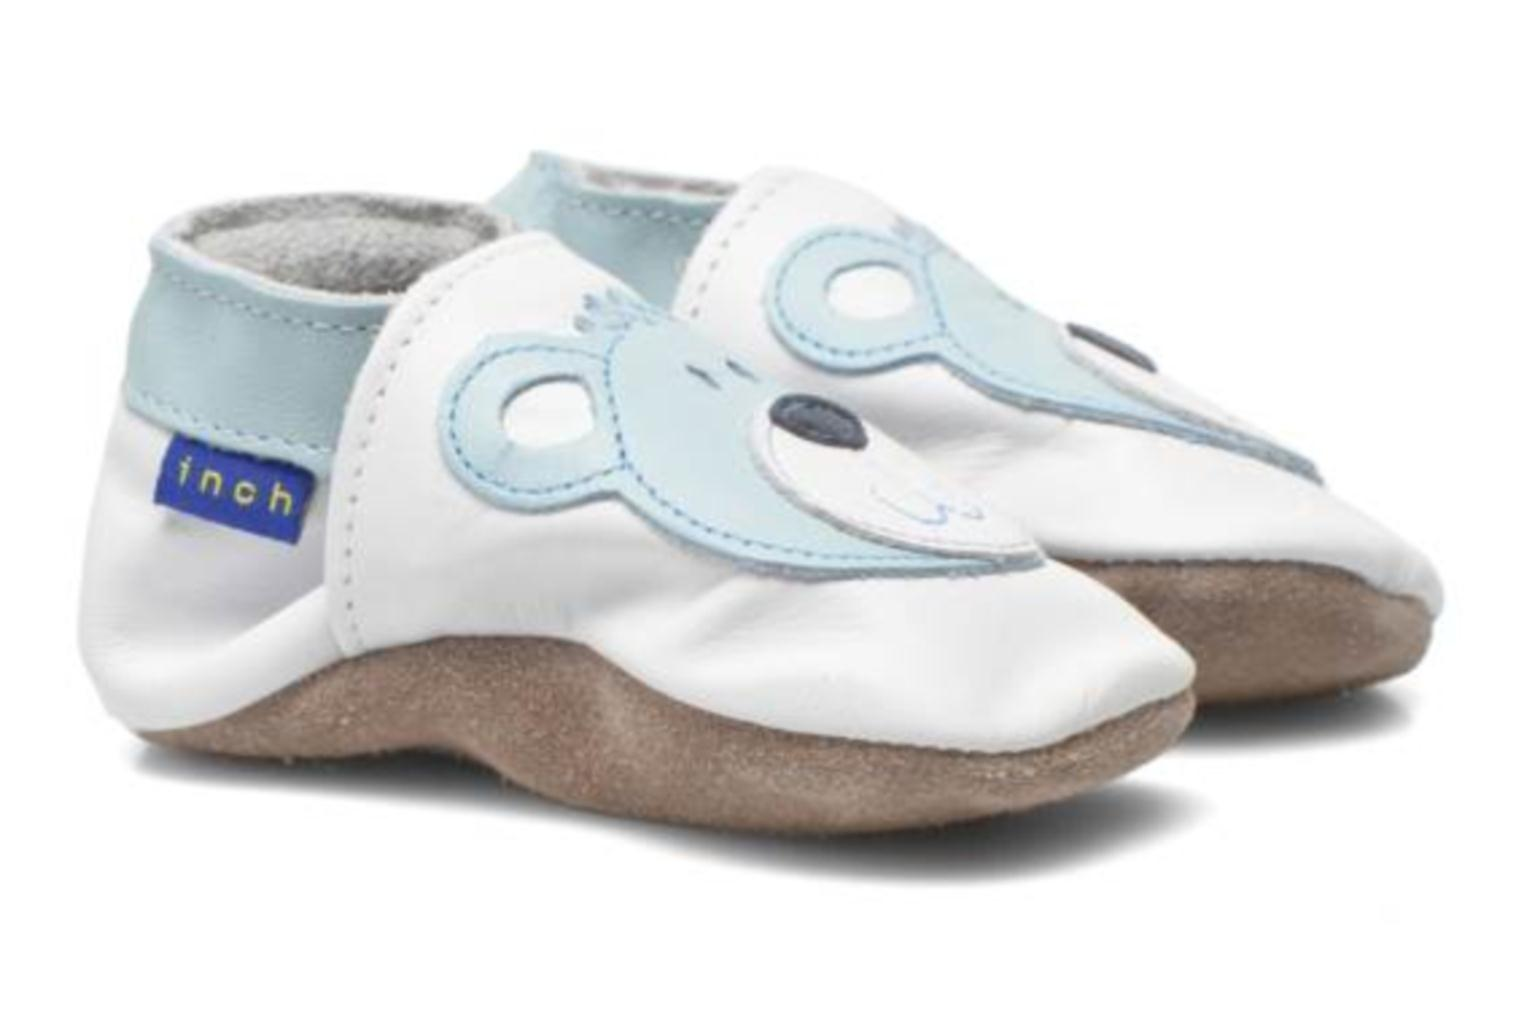 Slippers Inch Blue Teddy Blue White 3/4 view